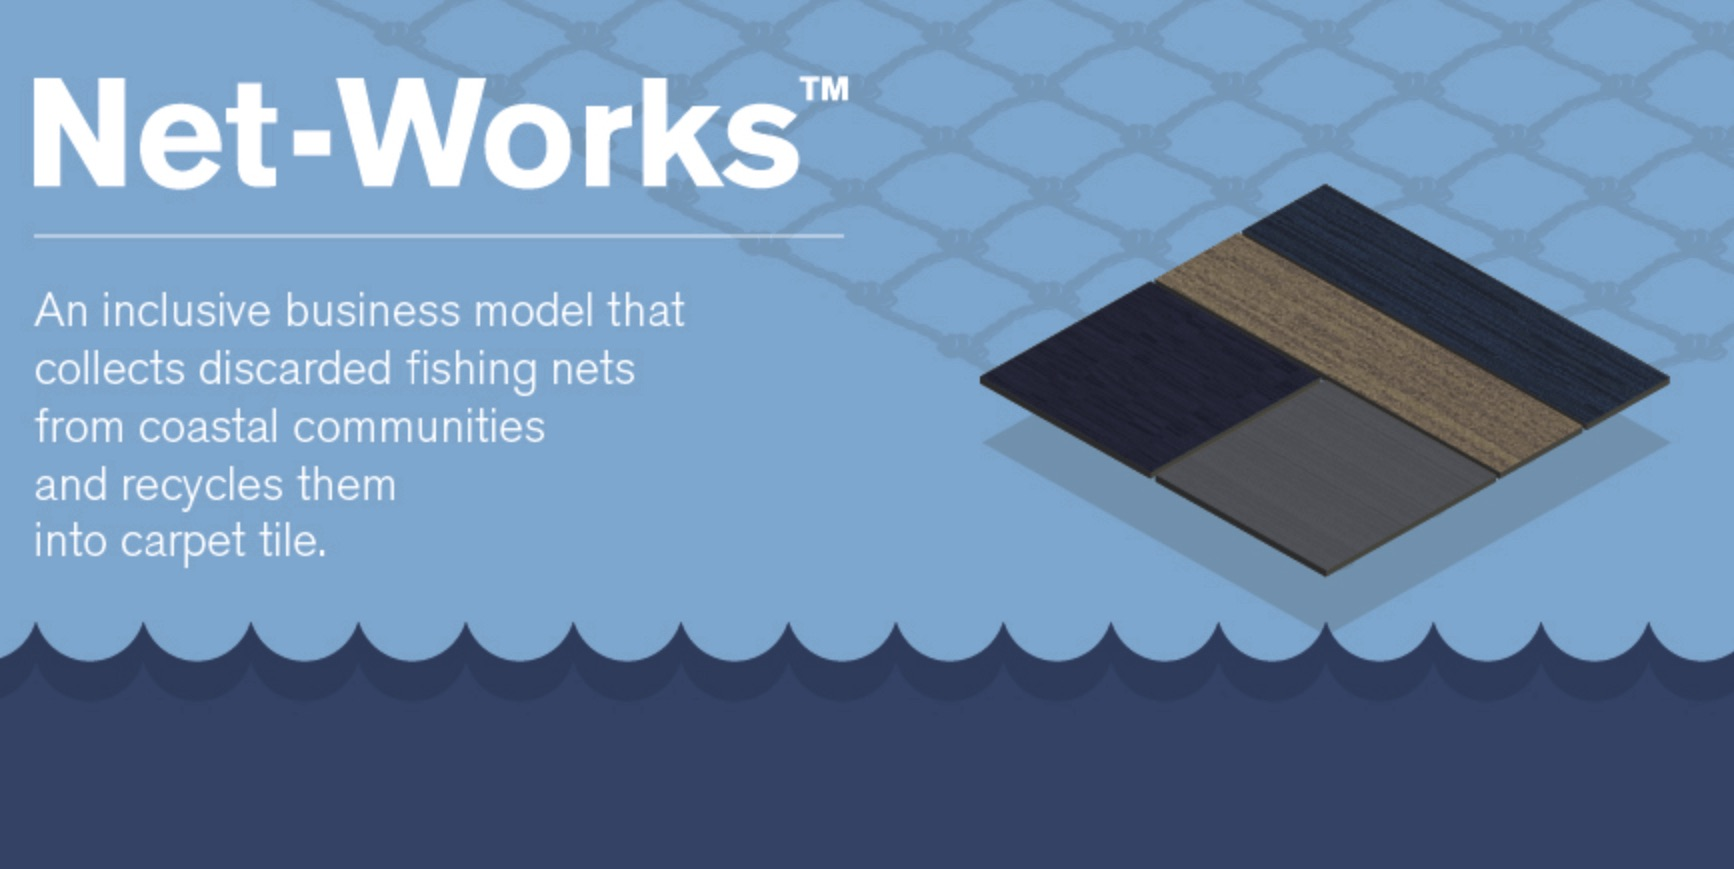 Net-Works description - it collects discarded fishing nets and recycles them into carpet tile